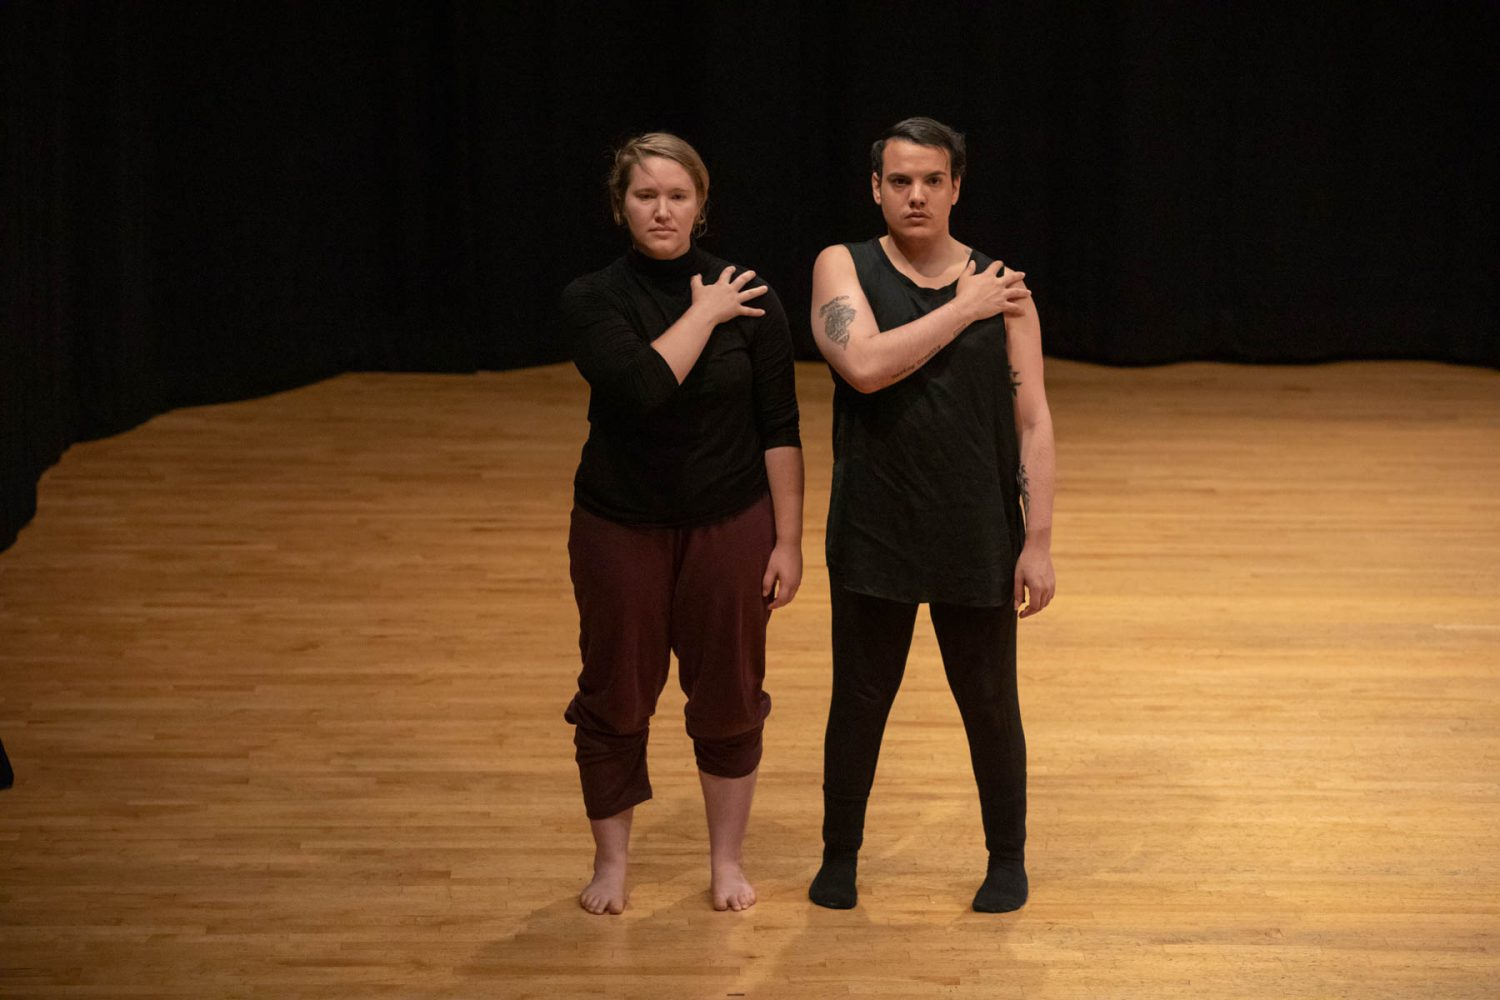 ) Bailey and Mark standing side by side. Both dancers have their right hands, fingers splayed, on their left shoulders.